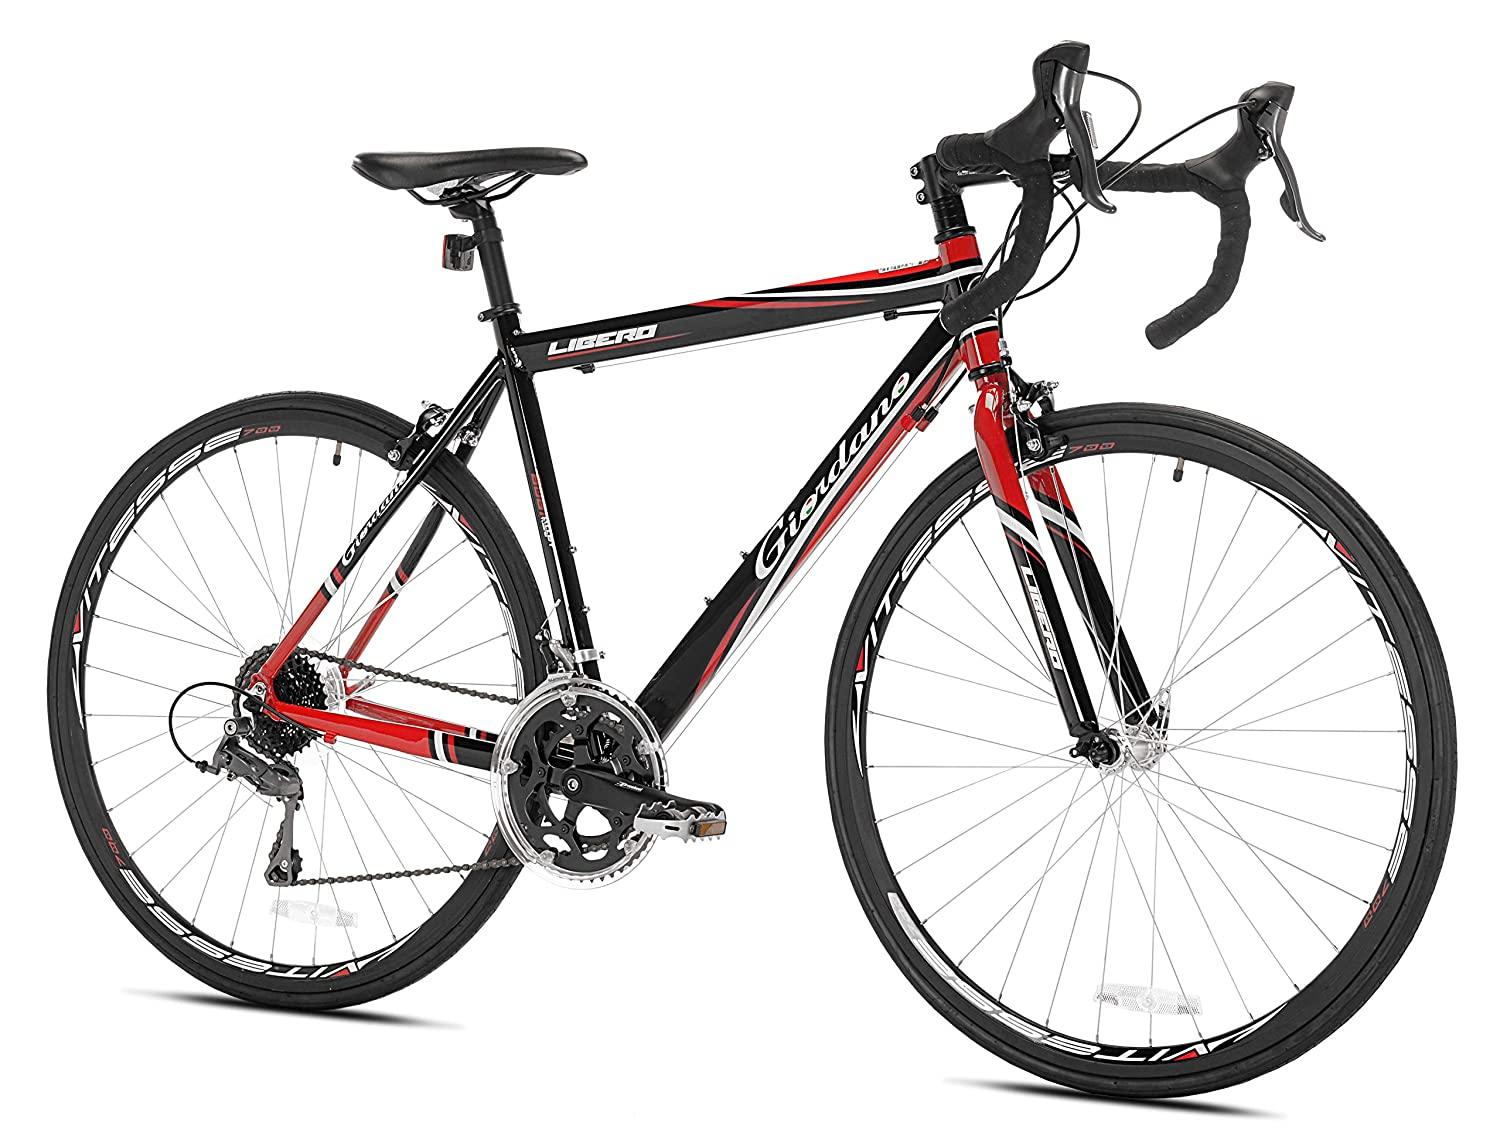 bfe3f201003 Amazon.com : Giordano Libero 1.6 Road Bike, Black/Red, 51cm/Small : Sports  & Outdoors